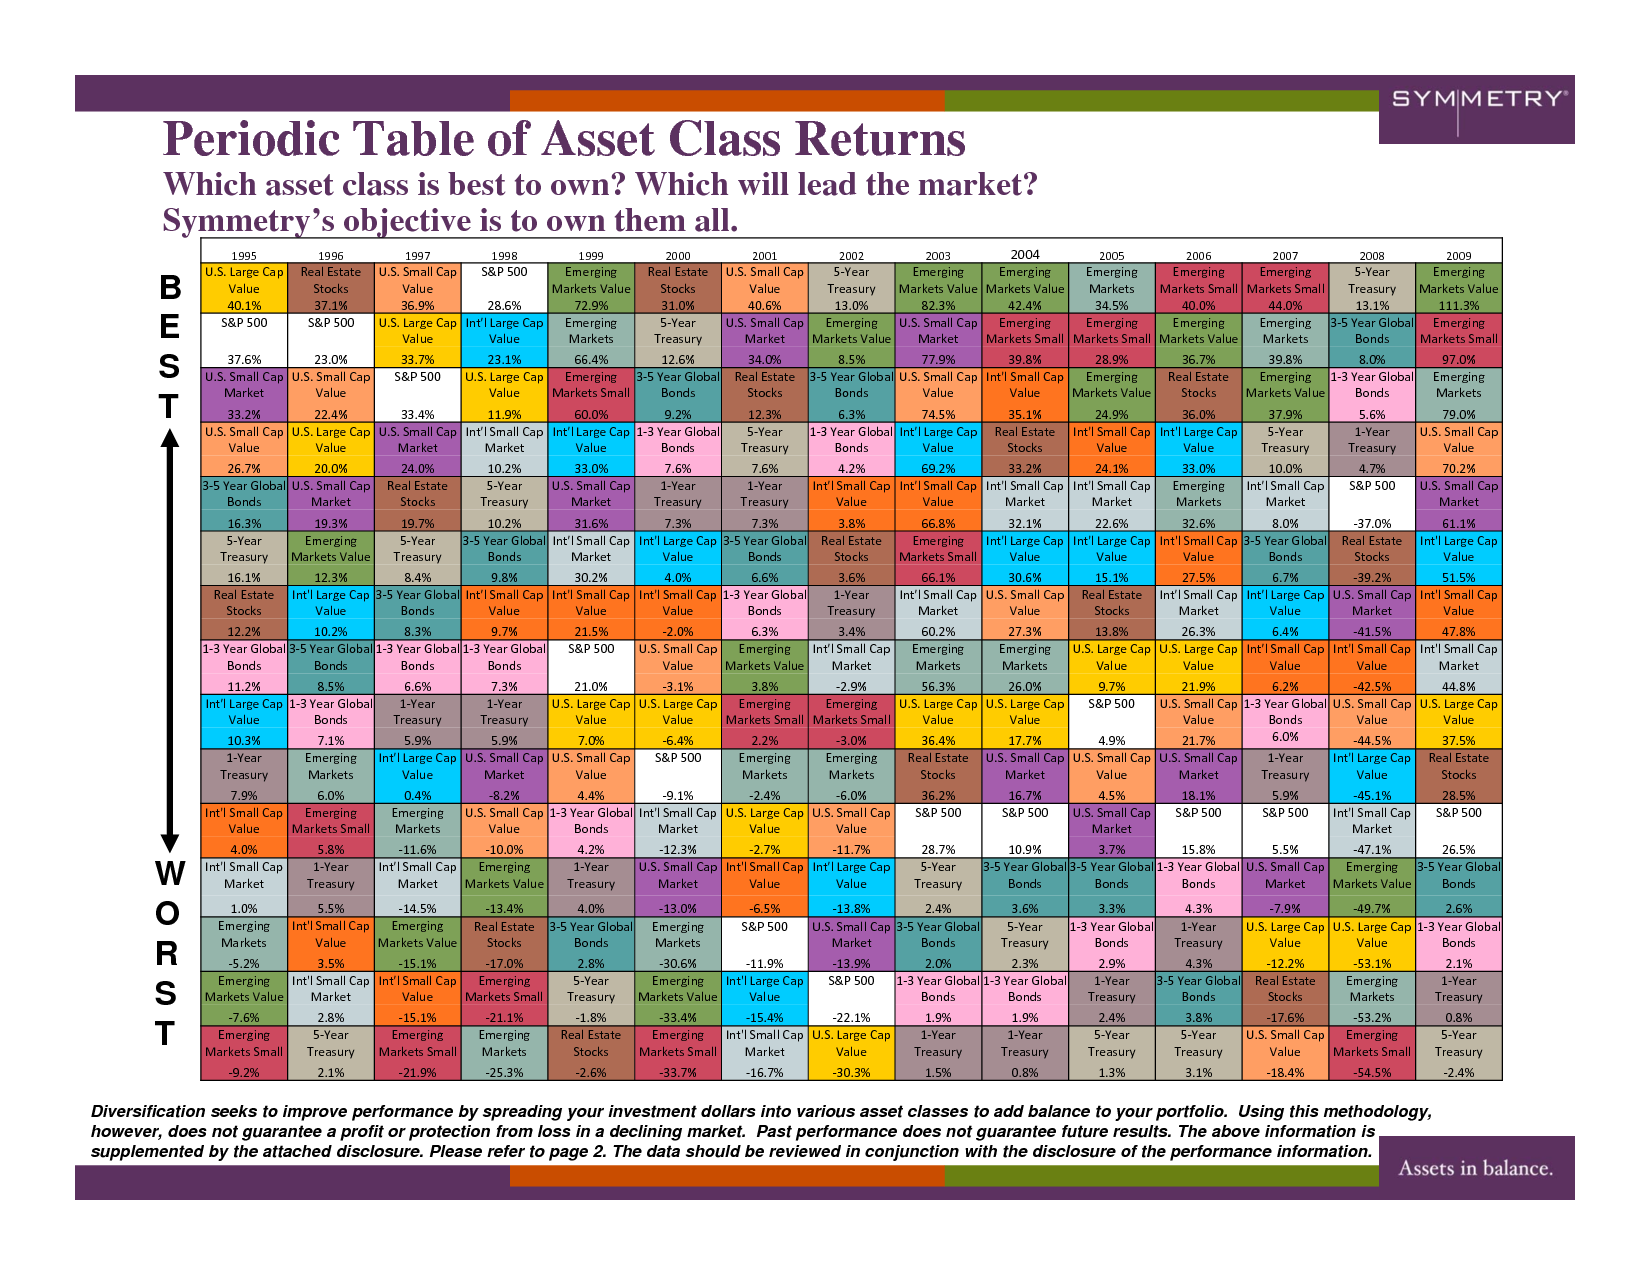 Periodic table of asset class returns asset return pinterest periodic table of asset class returns urtaz Image collections